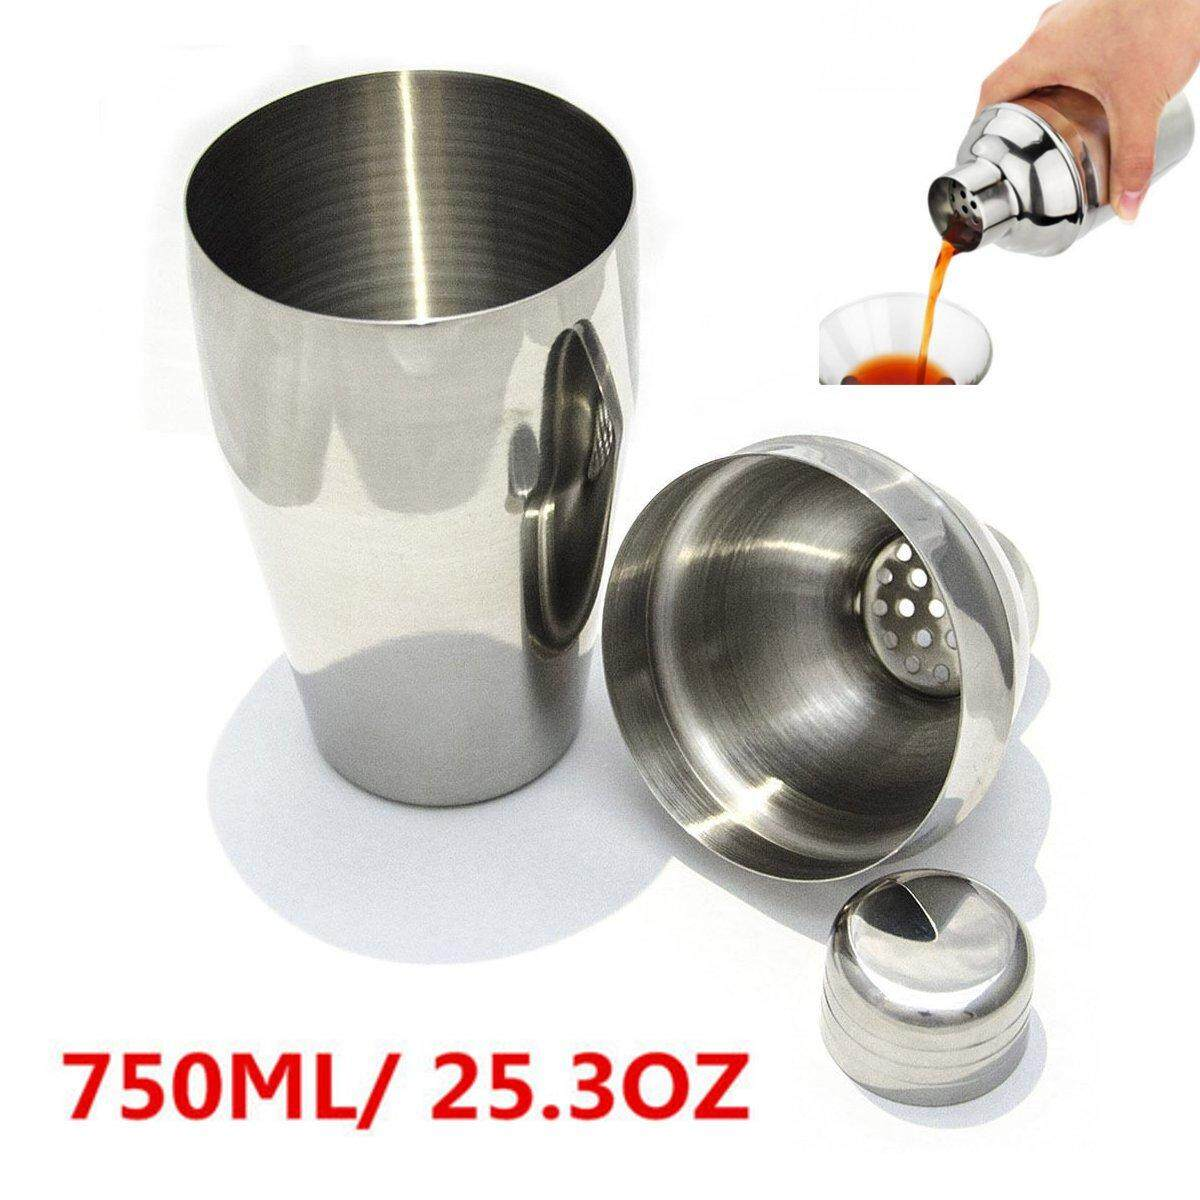 Stainless Steel Cocktail Shaker Mixer Drink Bartender Martini Bar Set Tool Kit By Audew.